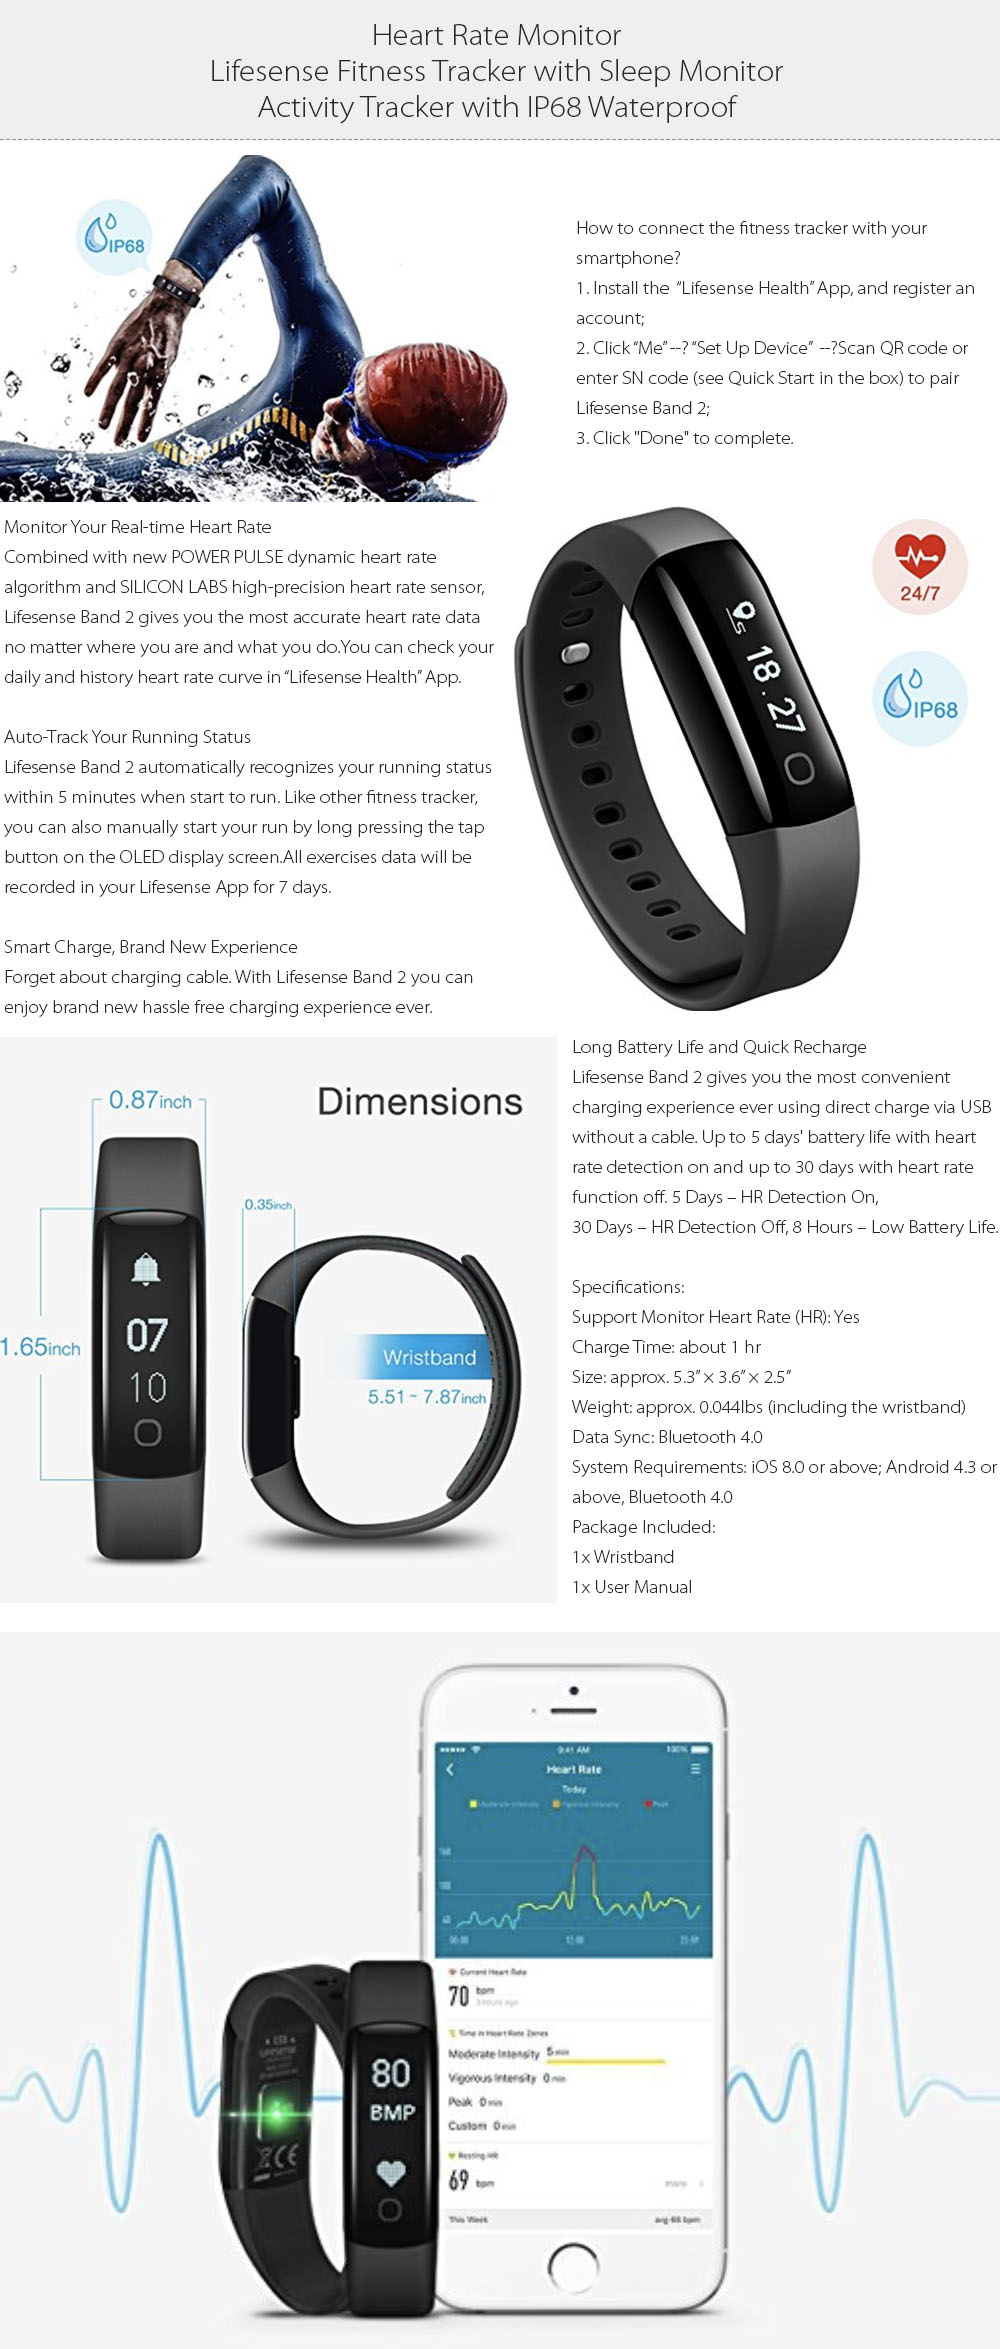 Heart Rate Monitor Waterproof Activity Tracker